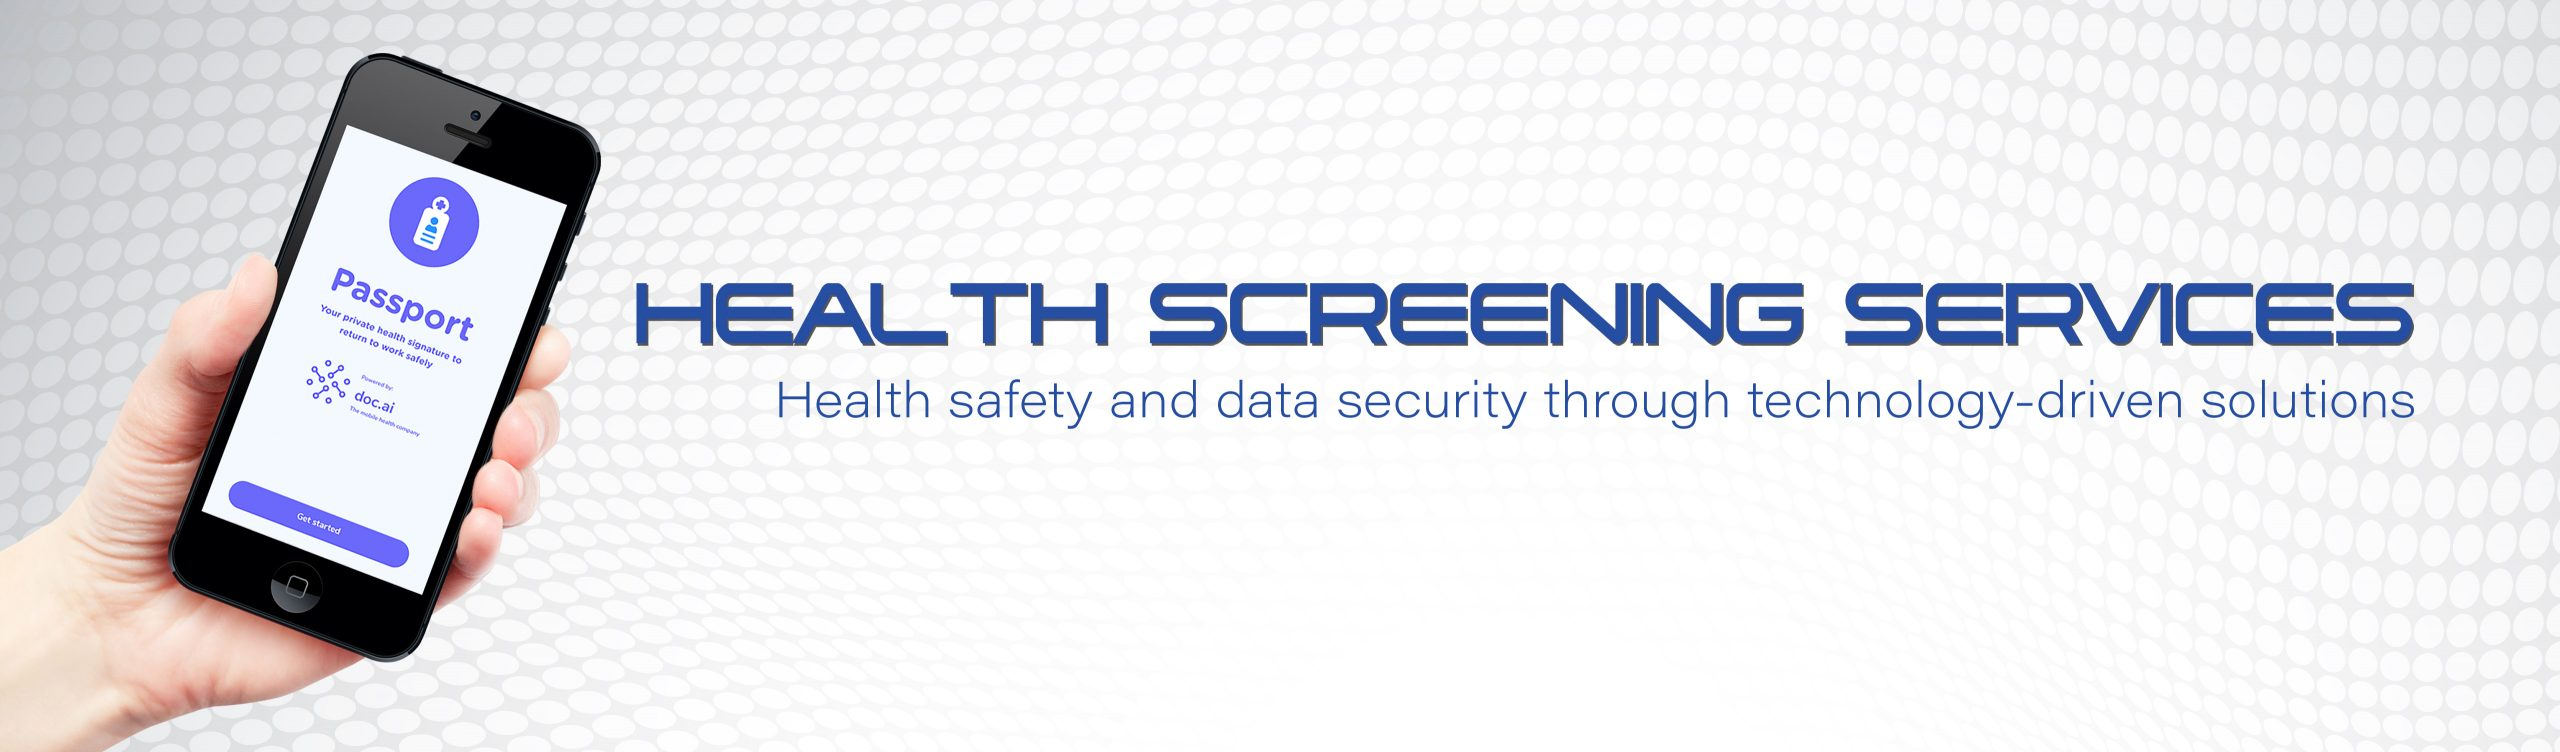 Health Screening Services | Health safety & data security through technology-driven solutions